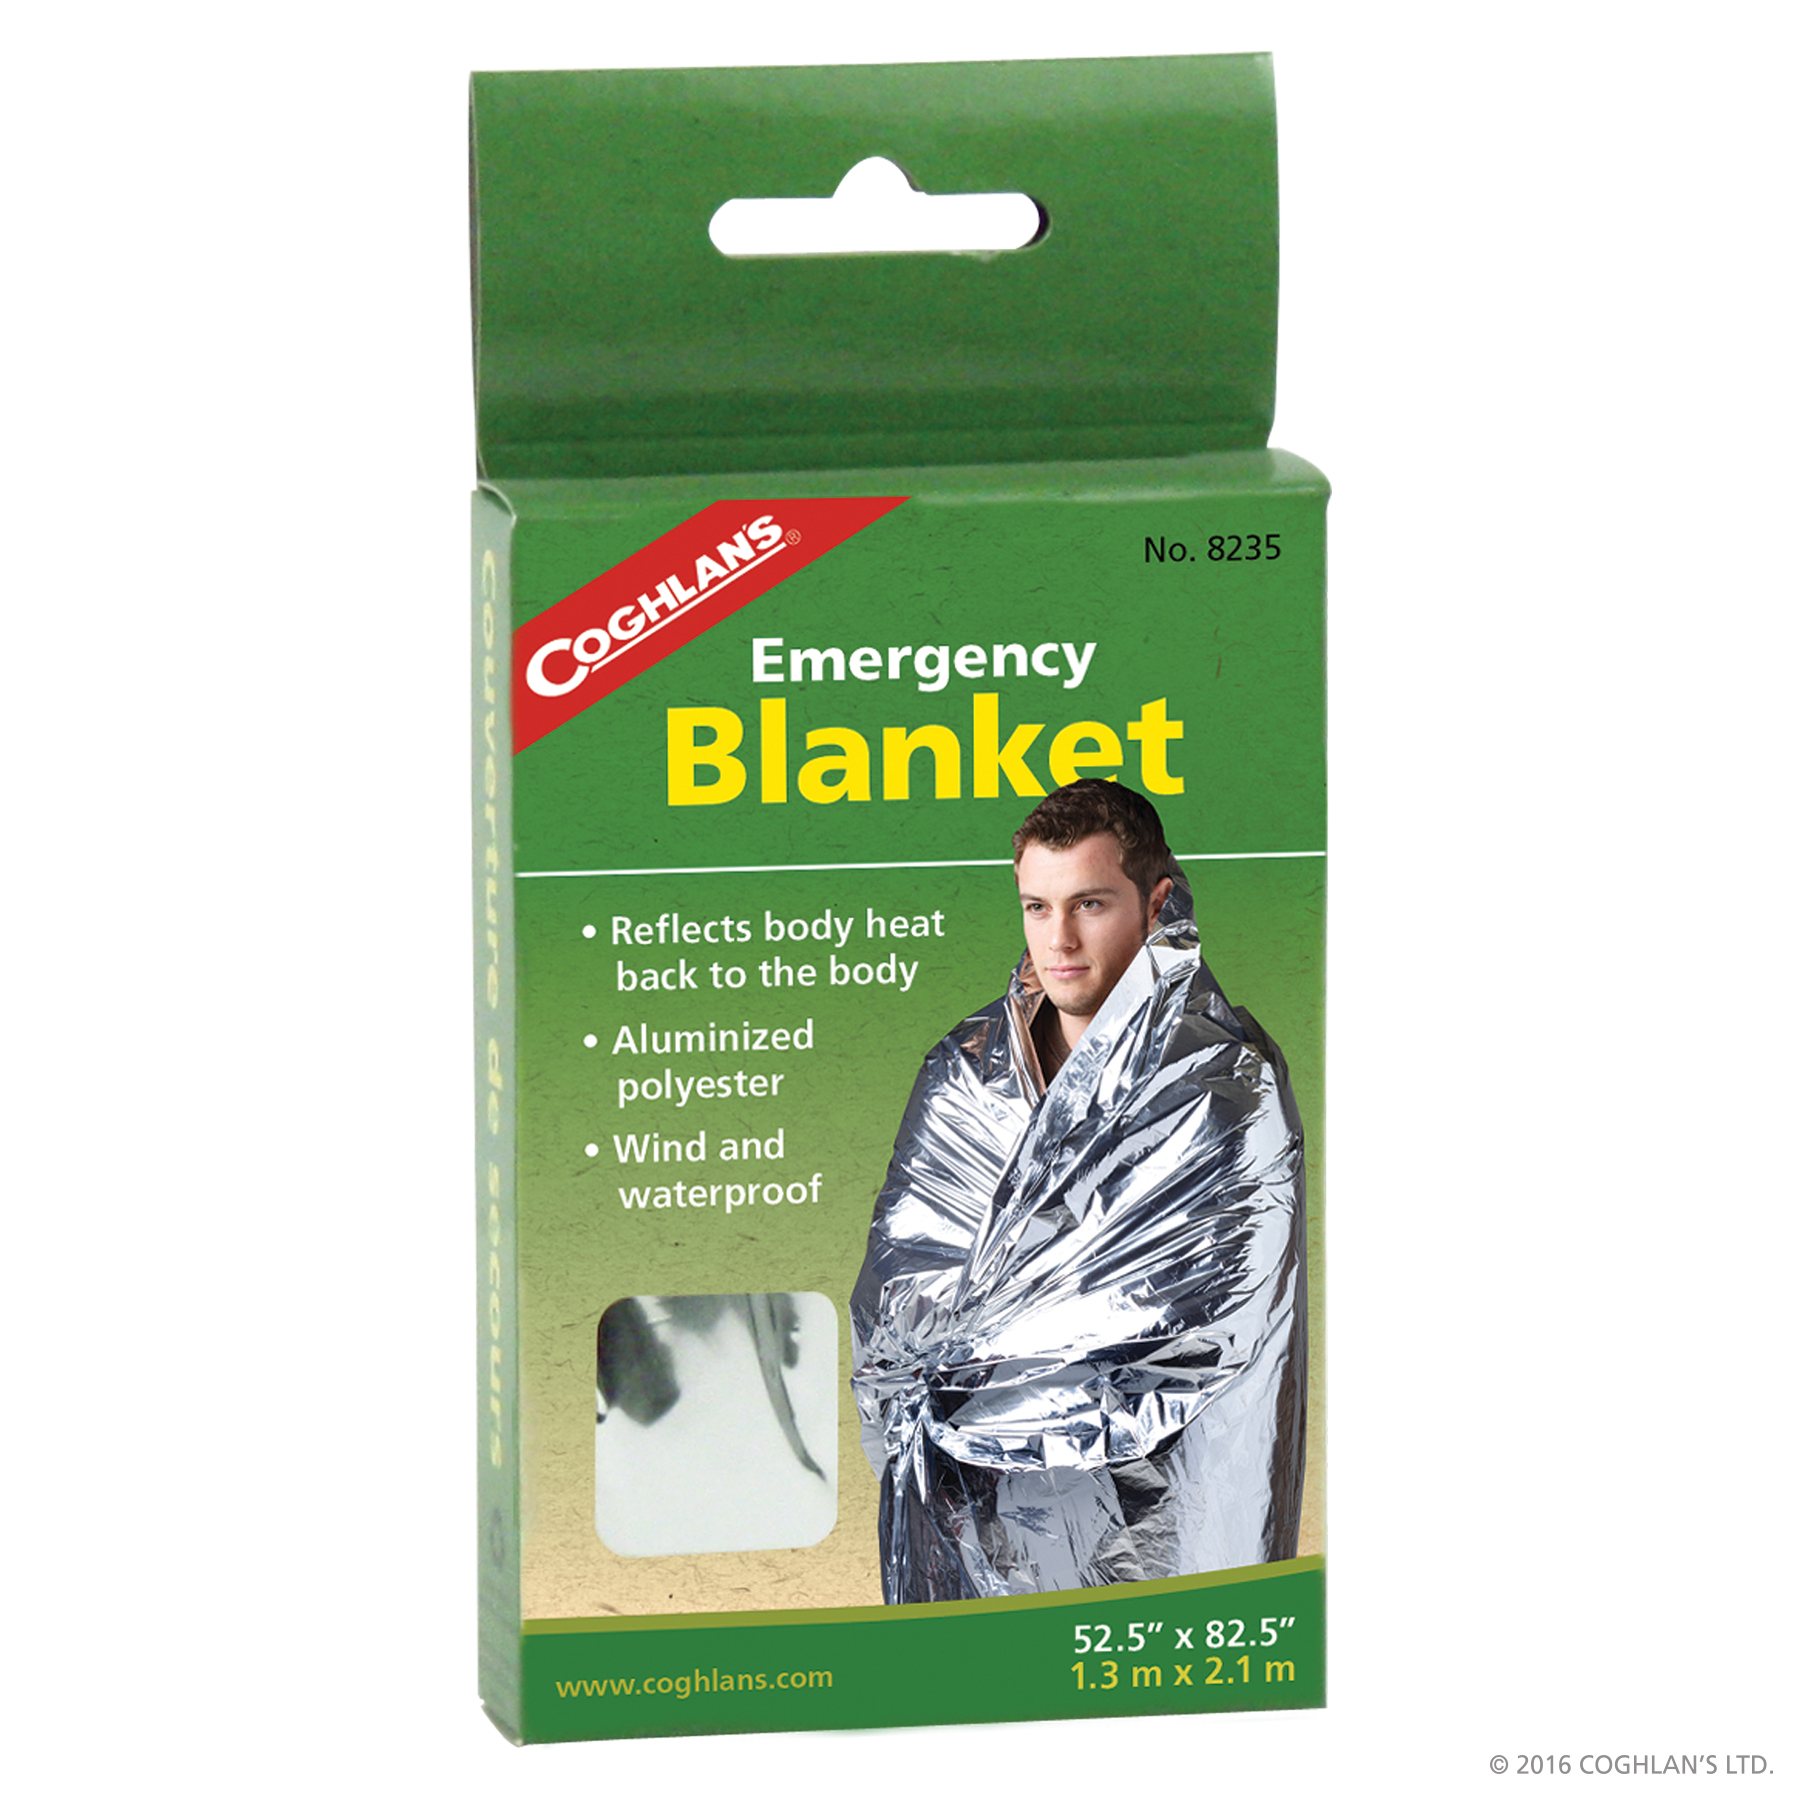 Coghlan's Emergency Blanket